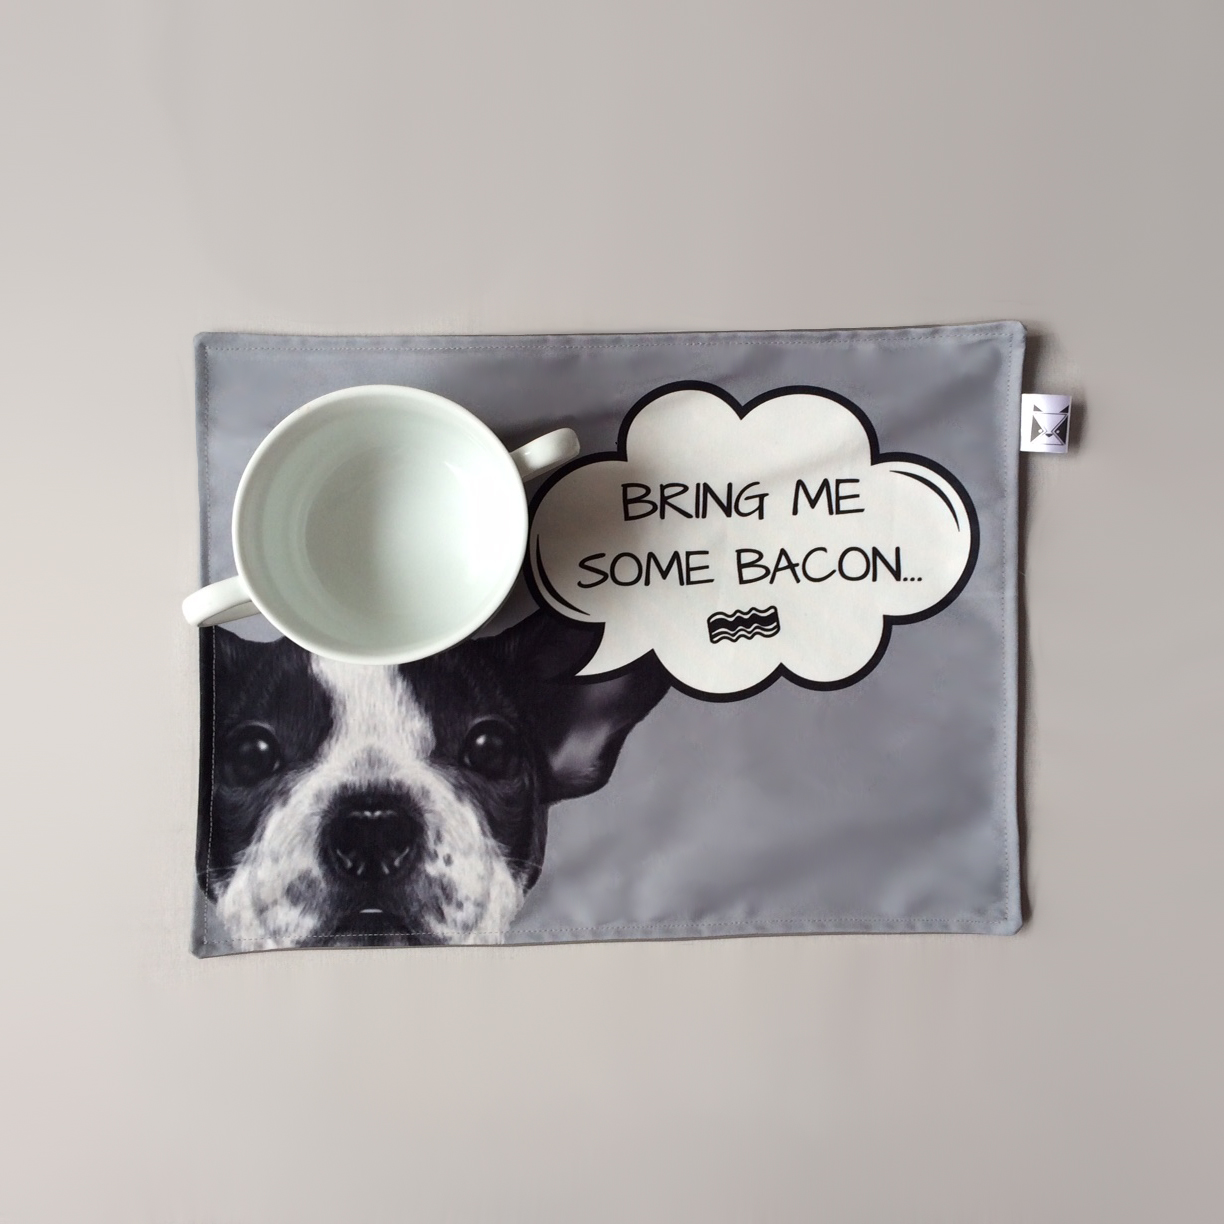 lugar americano dog bacon 1